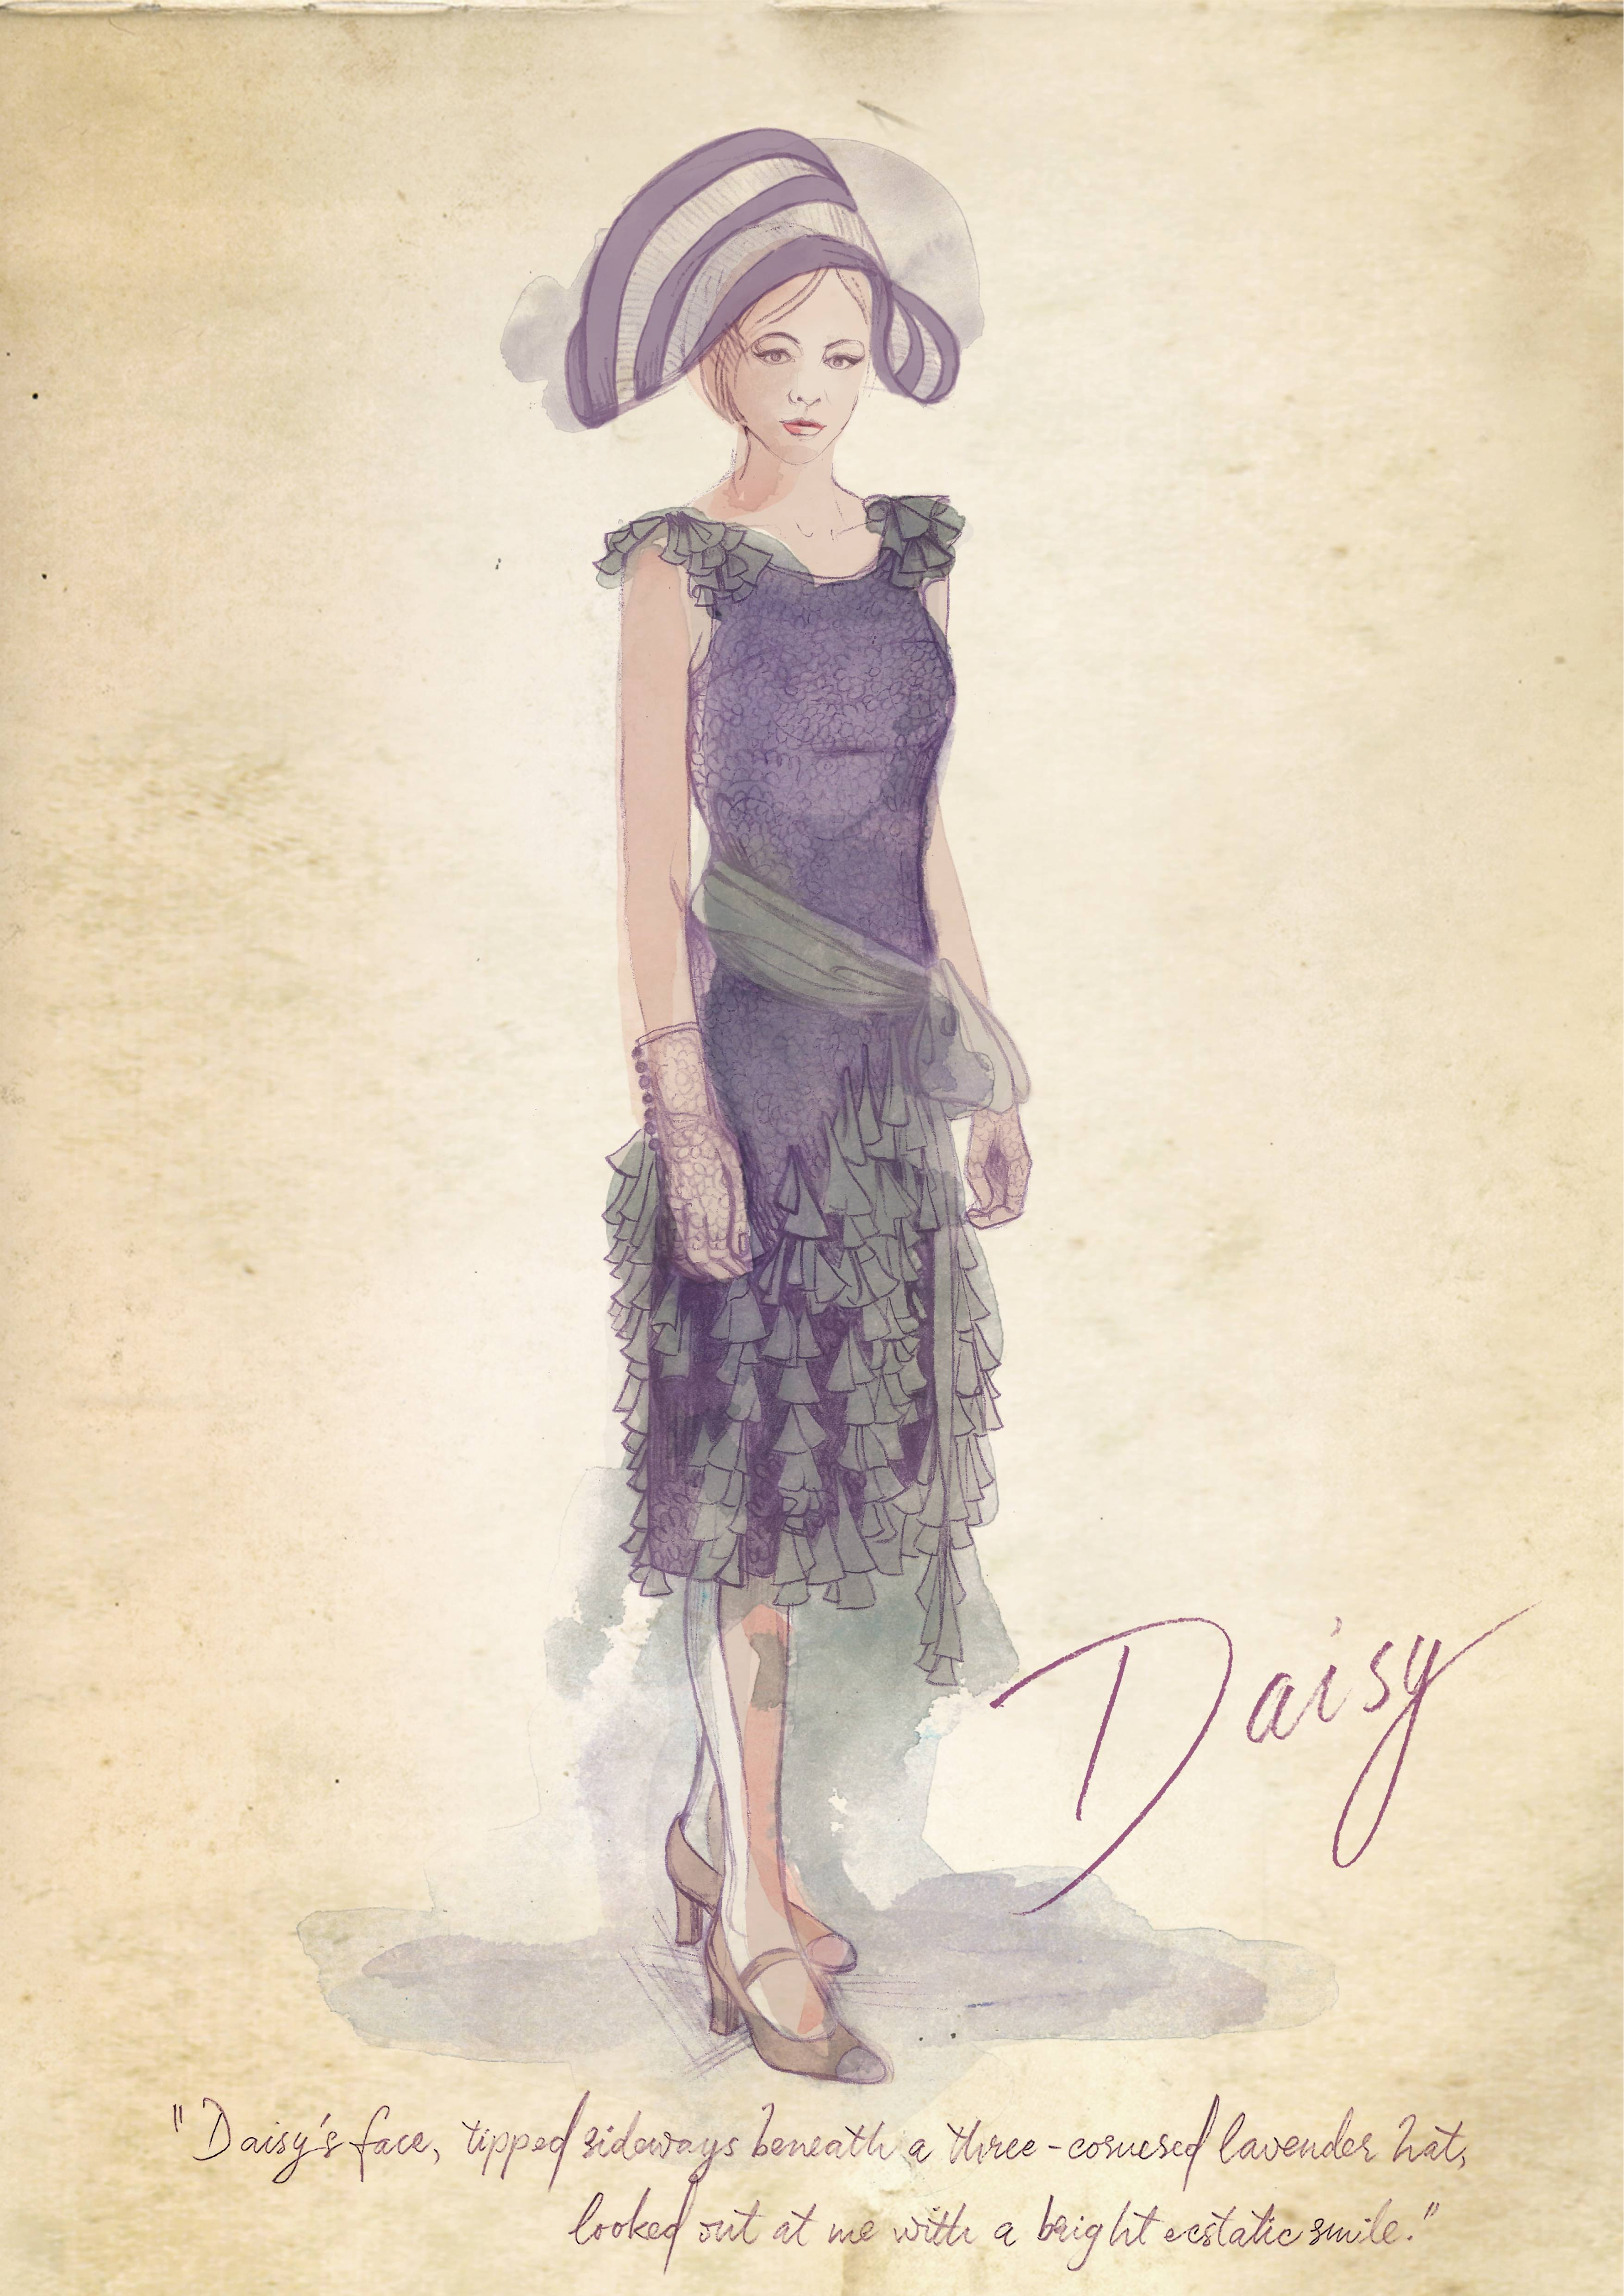 2. DAISY LAVENDER HAT